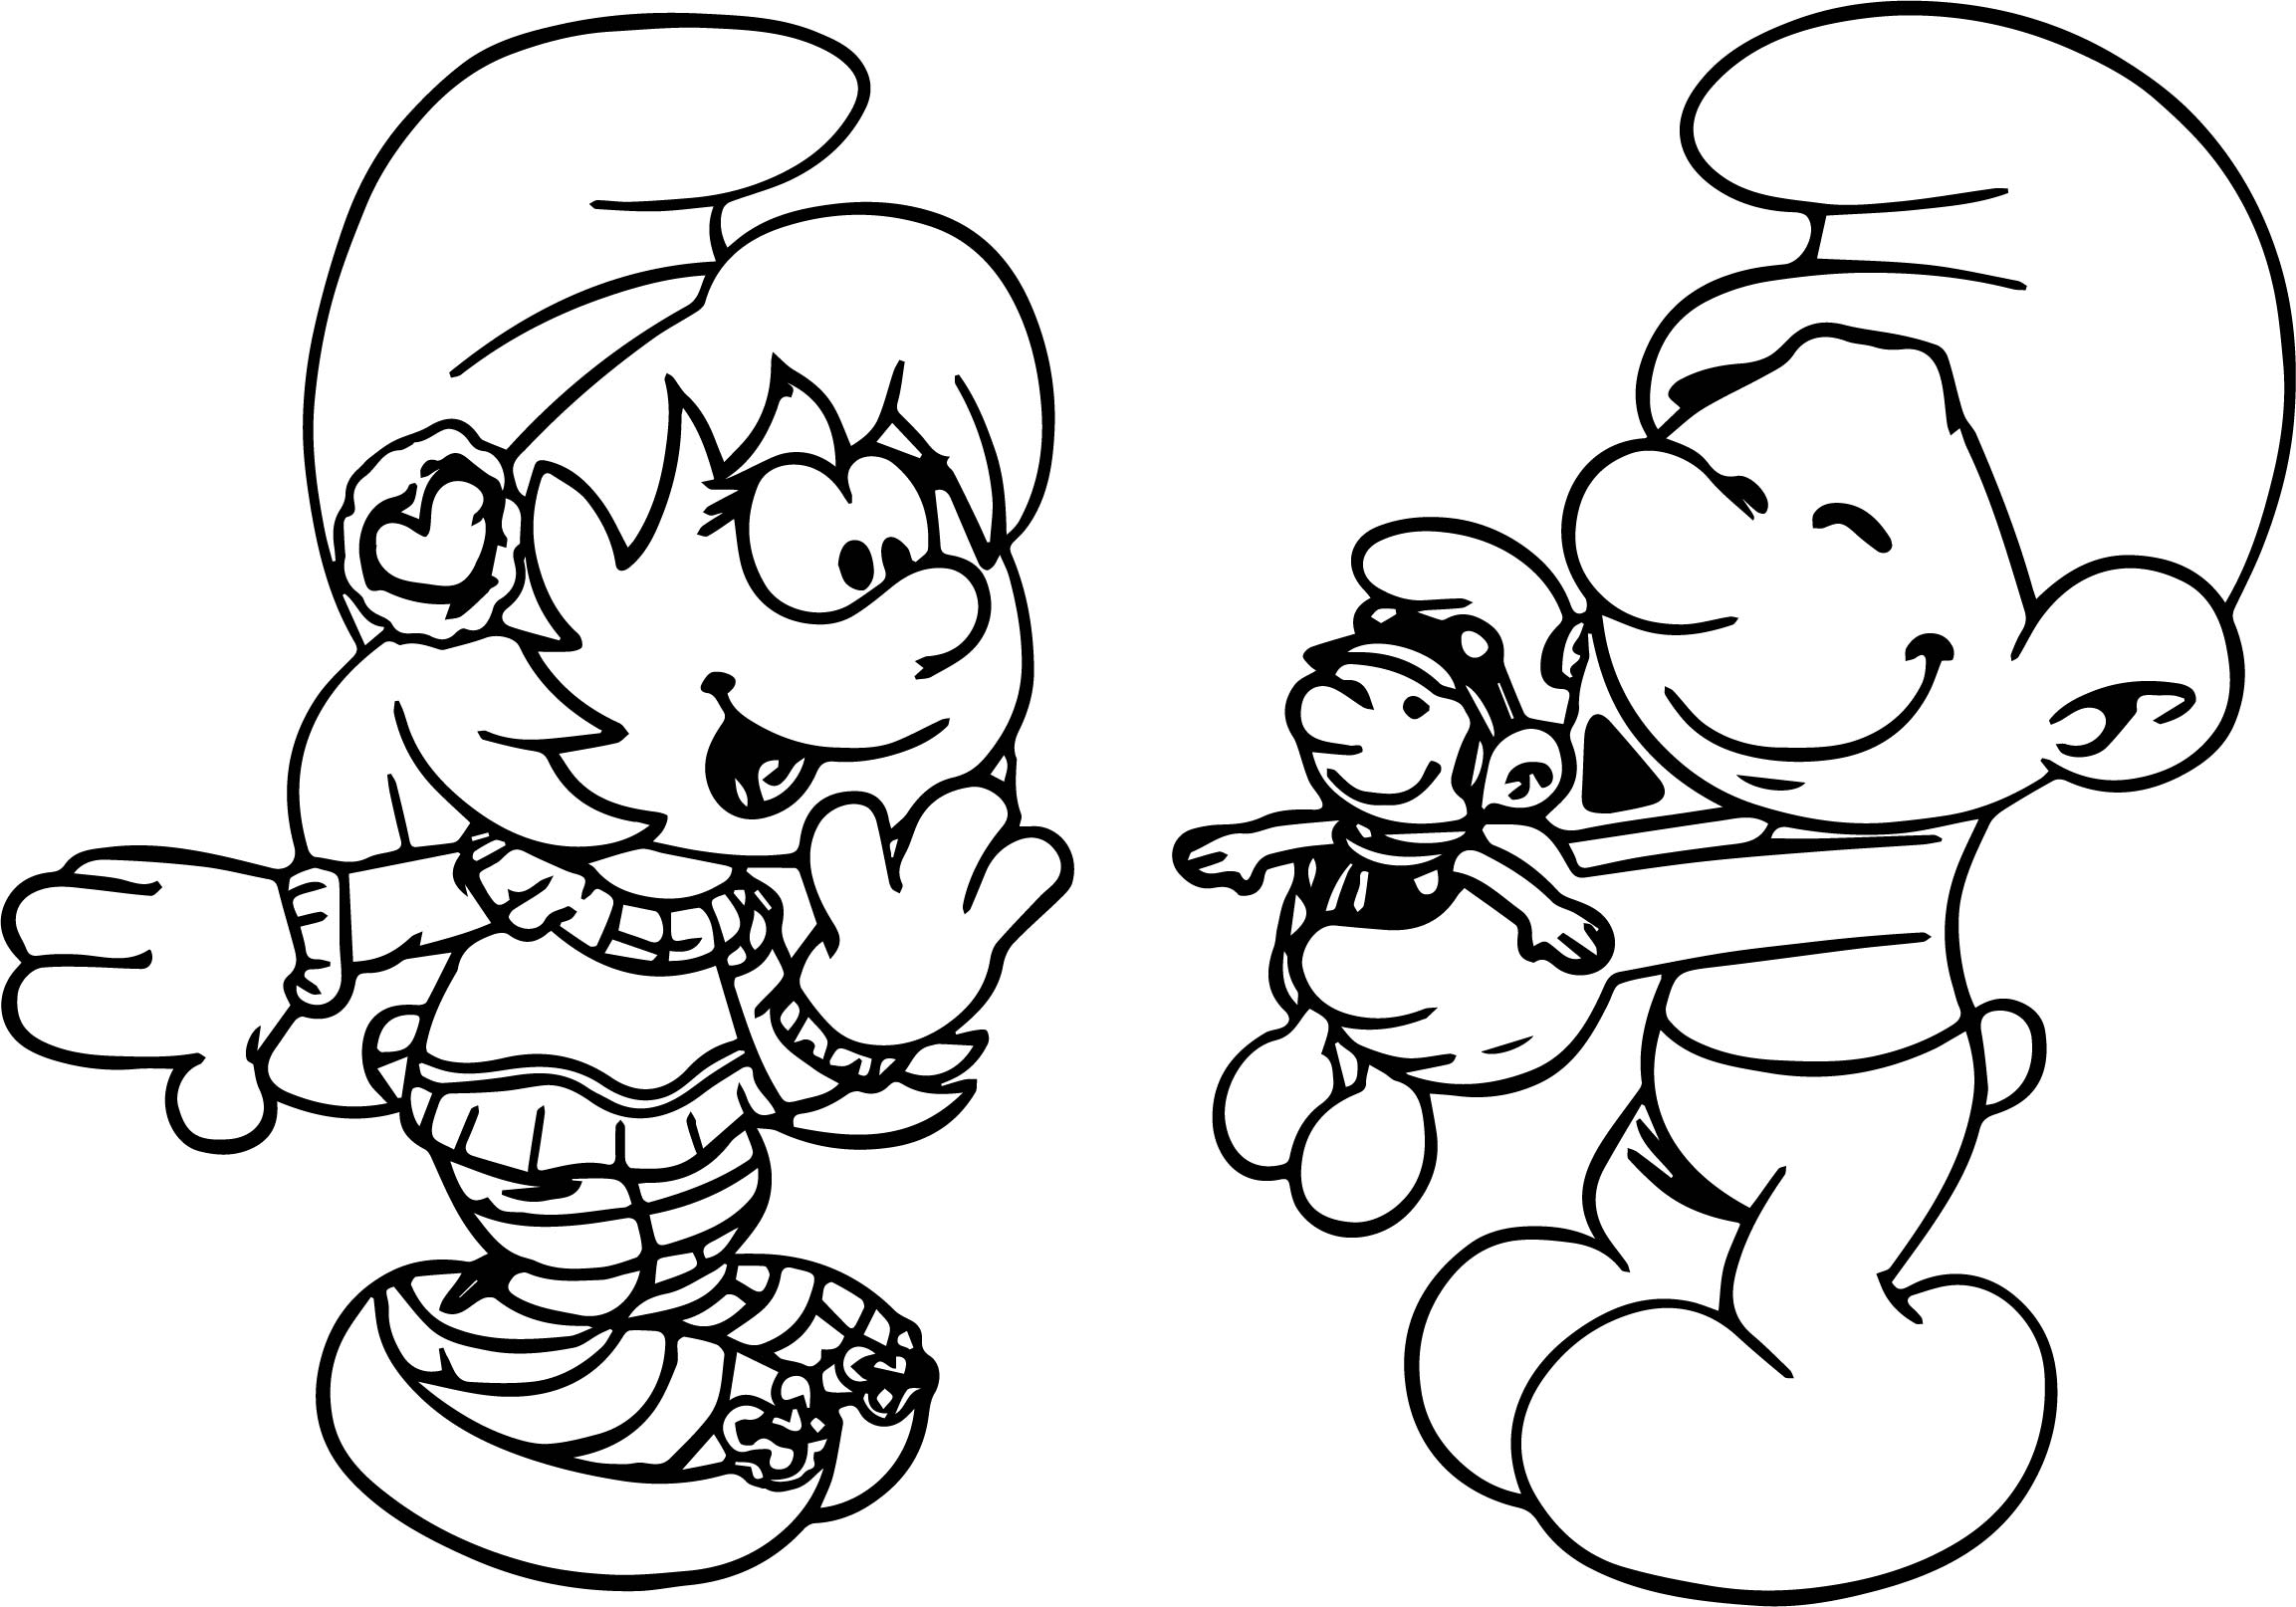 For You Toy Smurf Coloring Page